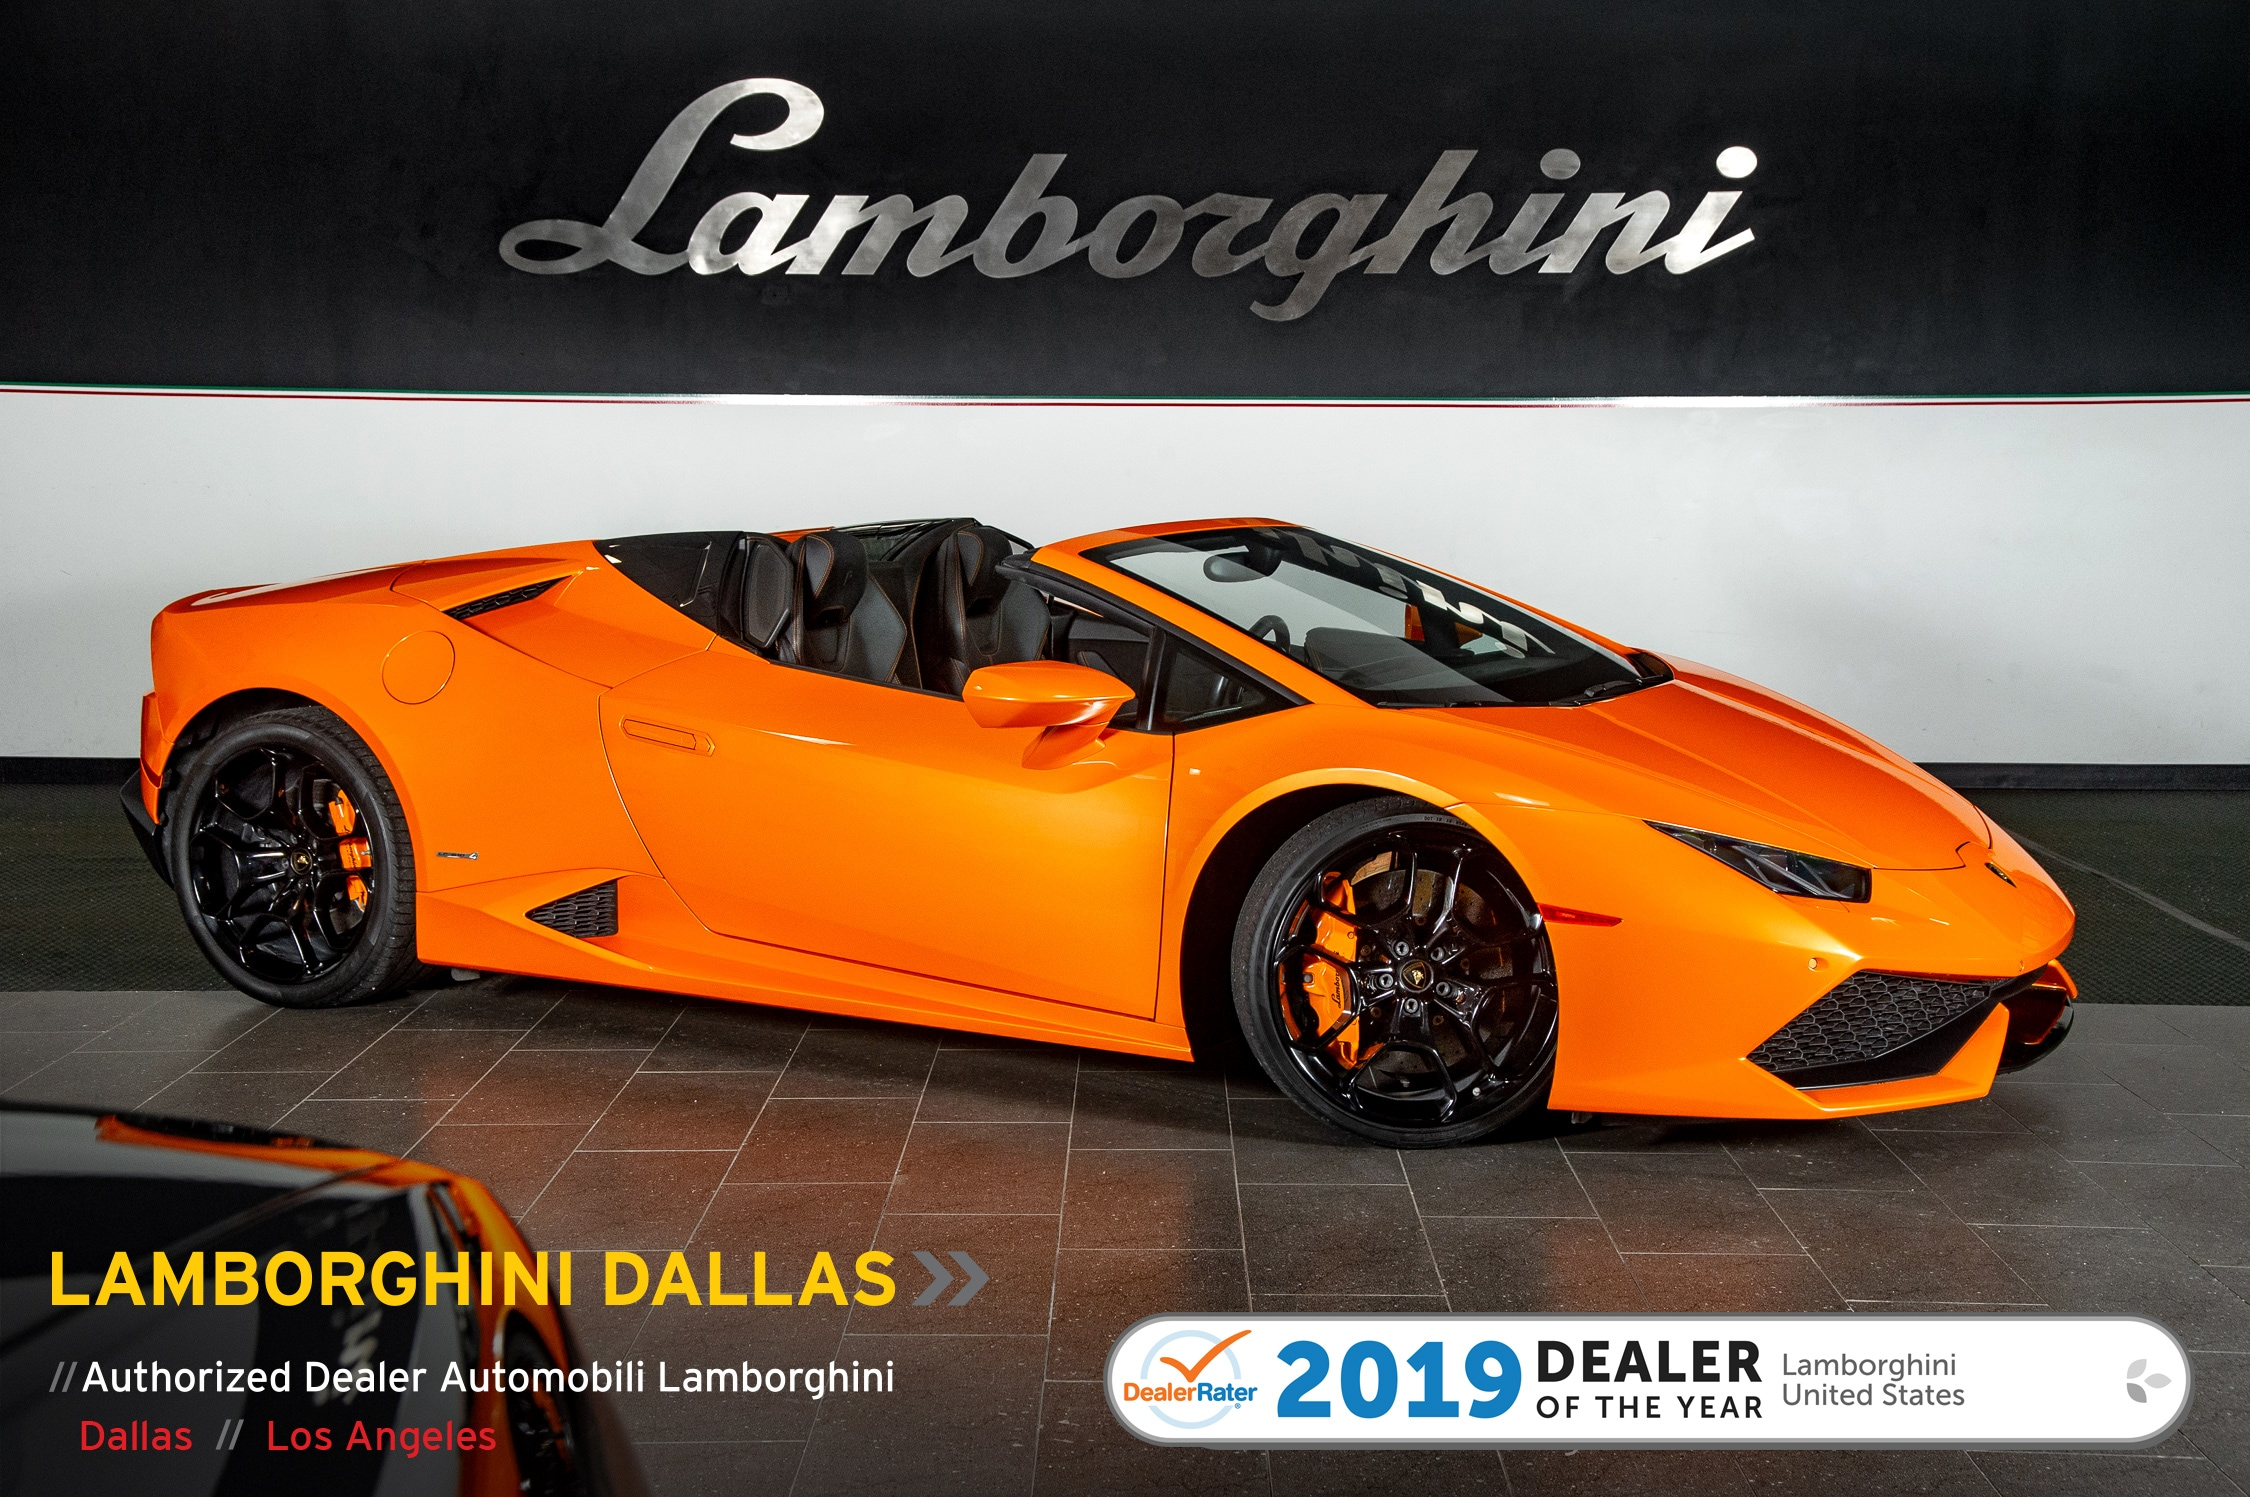 used 2016 Lamborghini Huracan LP610-4 car, priced at $219,999